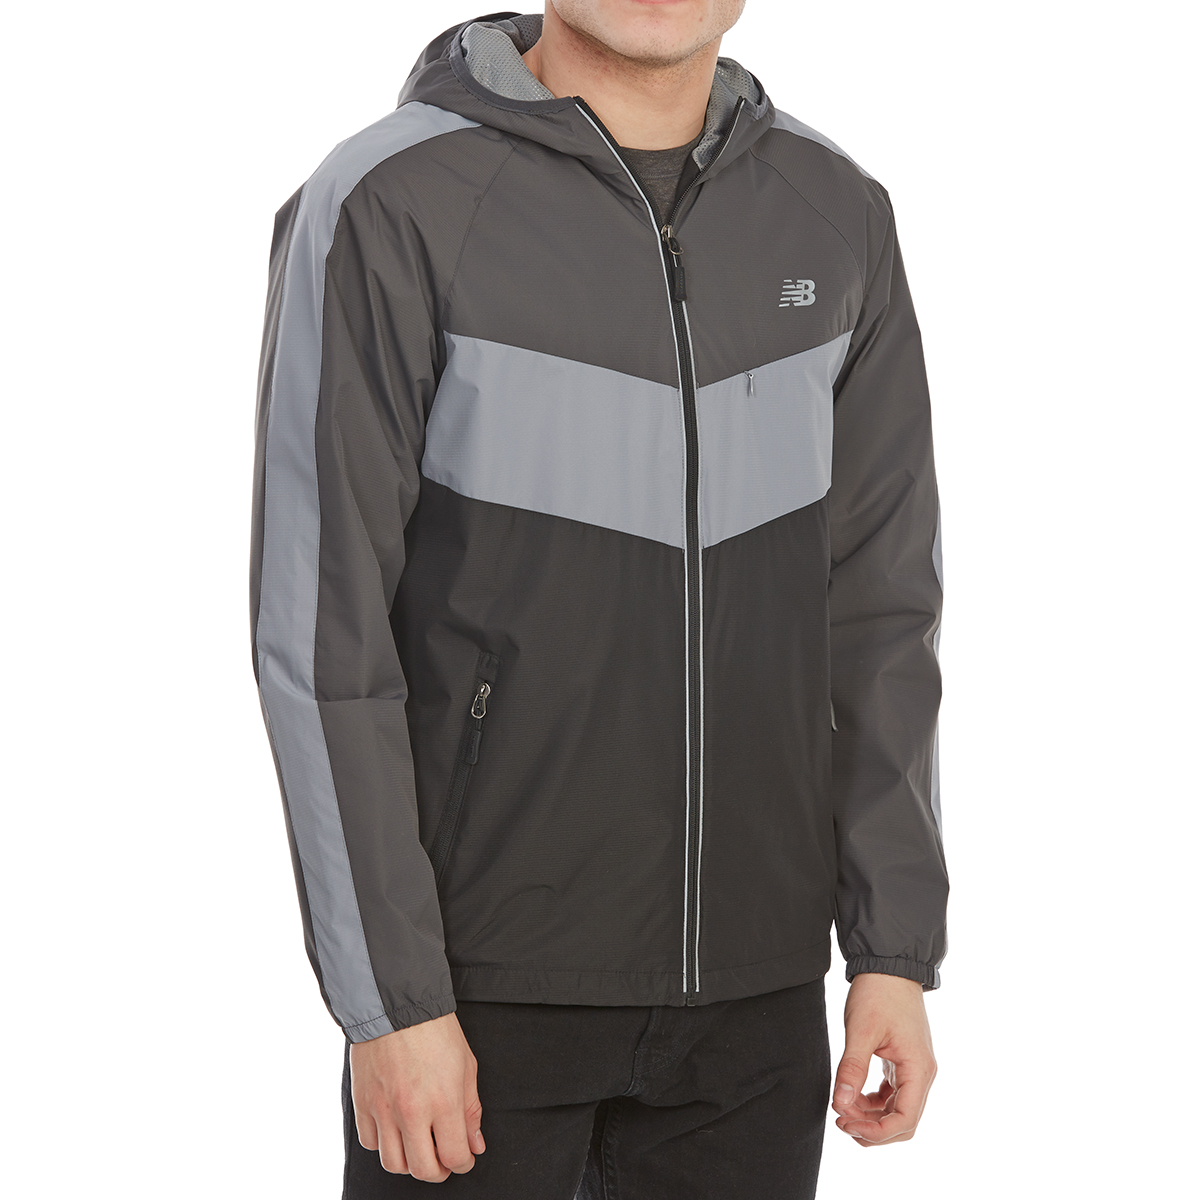 New Balance Men's Poly Dobby Color-Block Jacket - Black, L